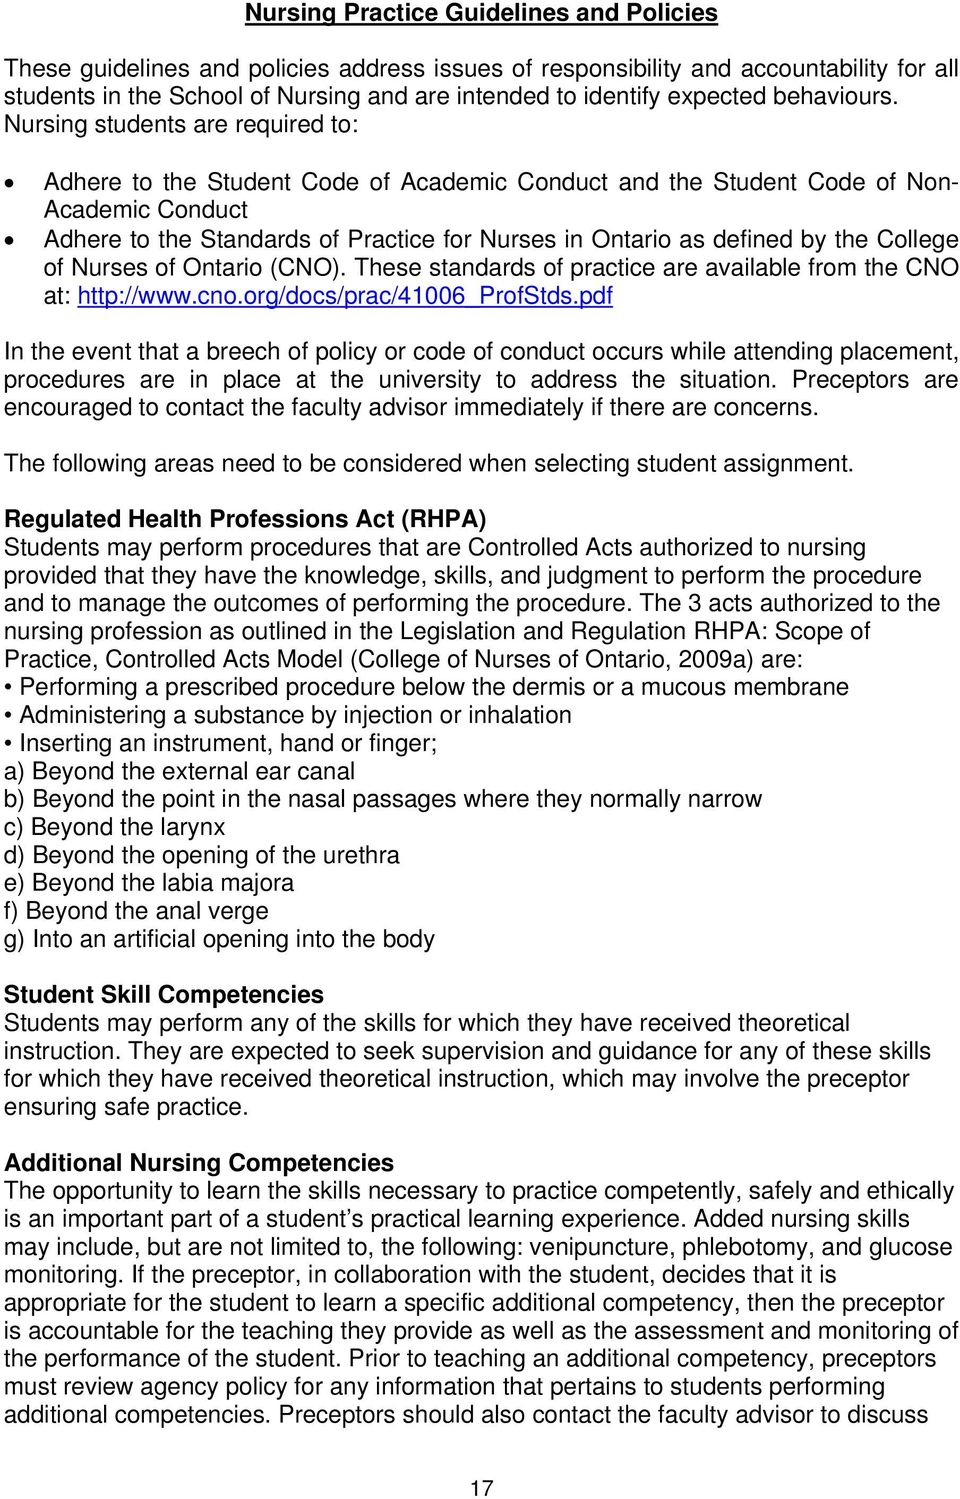 Nursing students are required to: Adhere to the Student Code of Academic Conduct and the Student Code of Non- Academic Conduct Adhere to the Standards of Practice for Nurses in Ontario as defined by